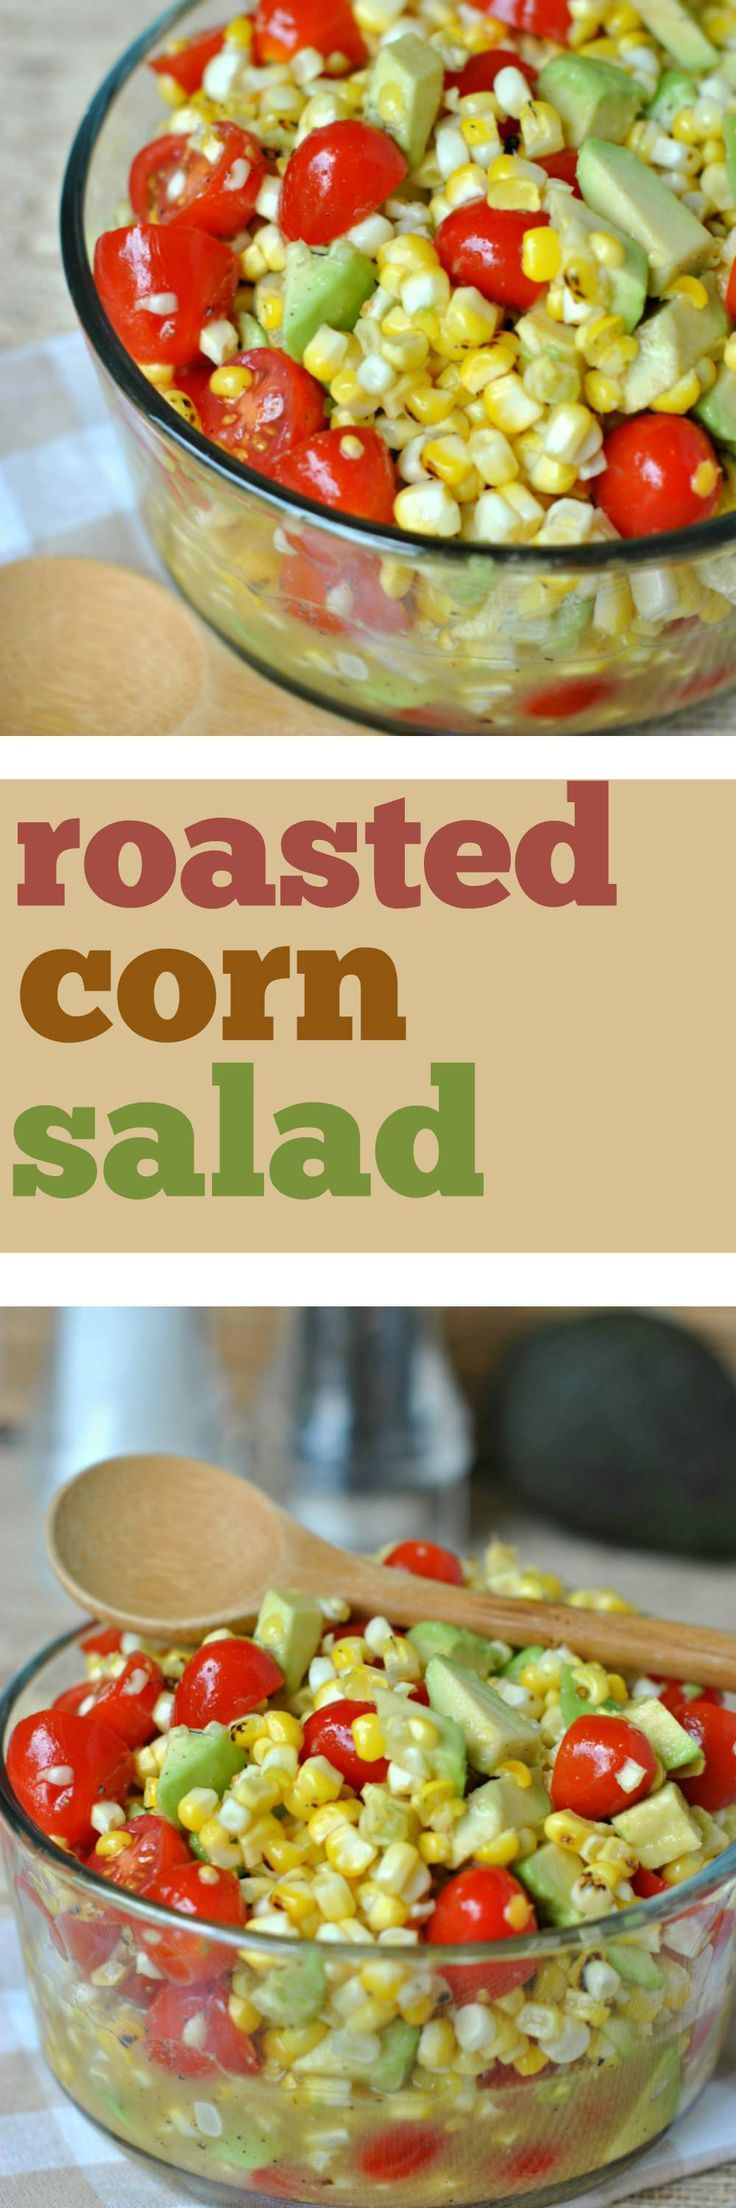 This Roasted Corn Salad recipe was given to me by a neighbor. I've made it 4 times in the past two weeks, it's that good! The honey-lime dressing gives a touch of sweetness to the veggies!